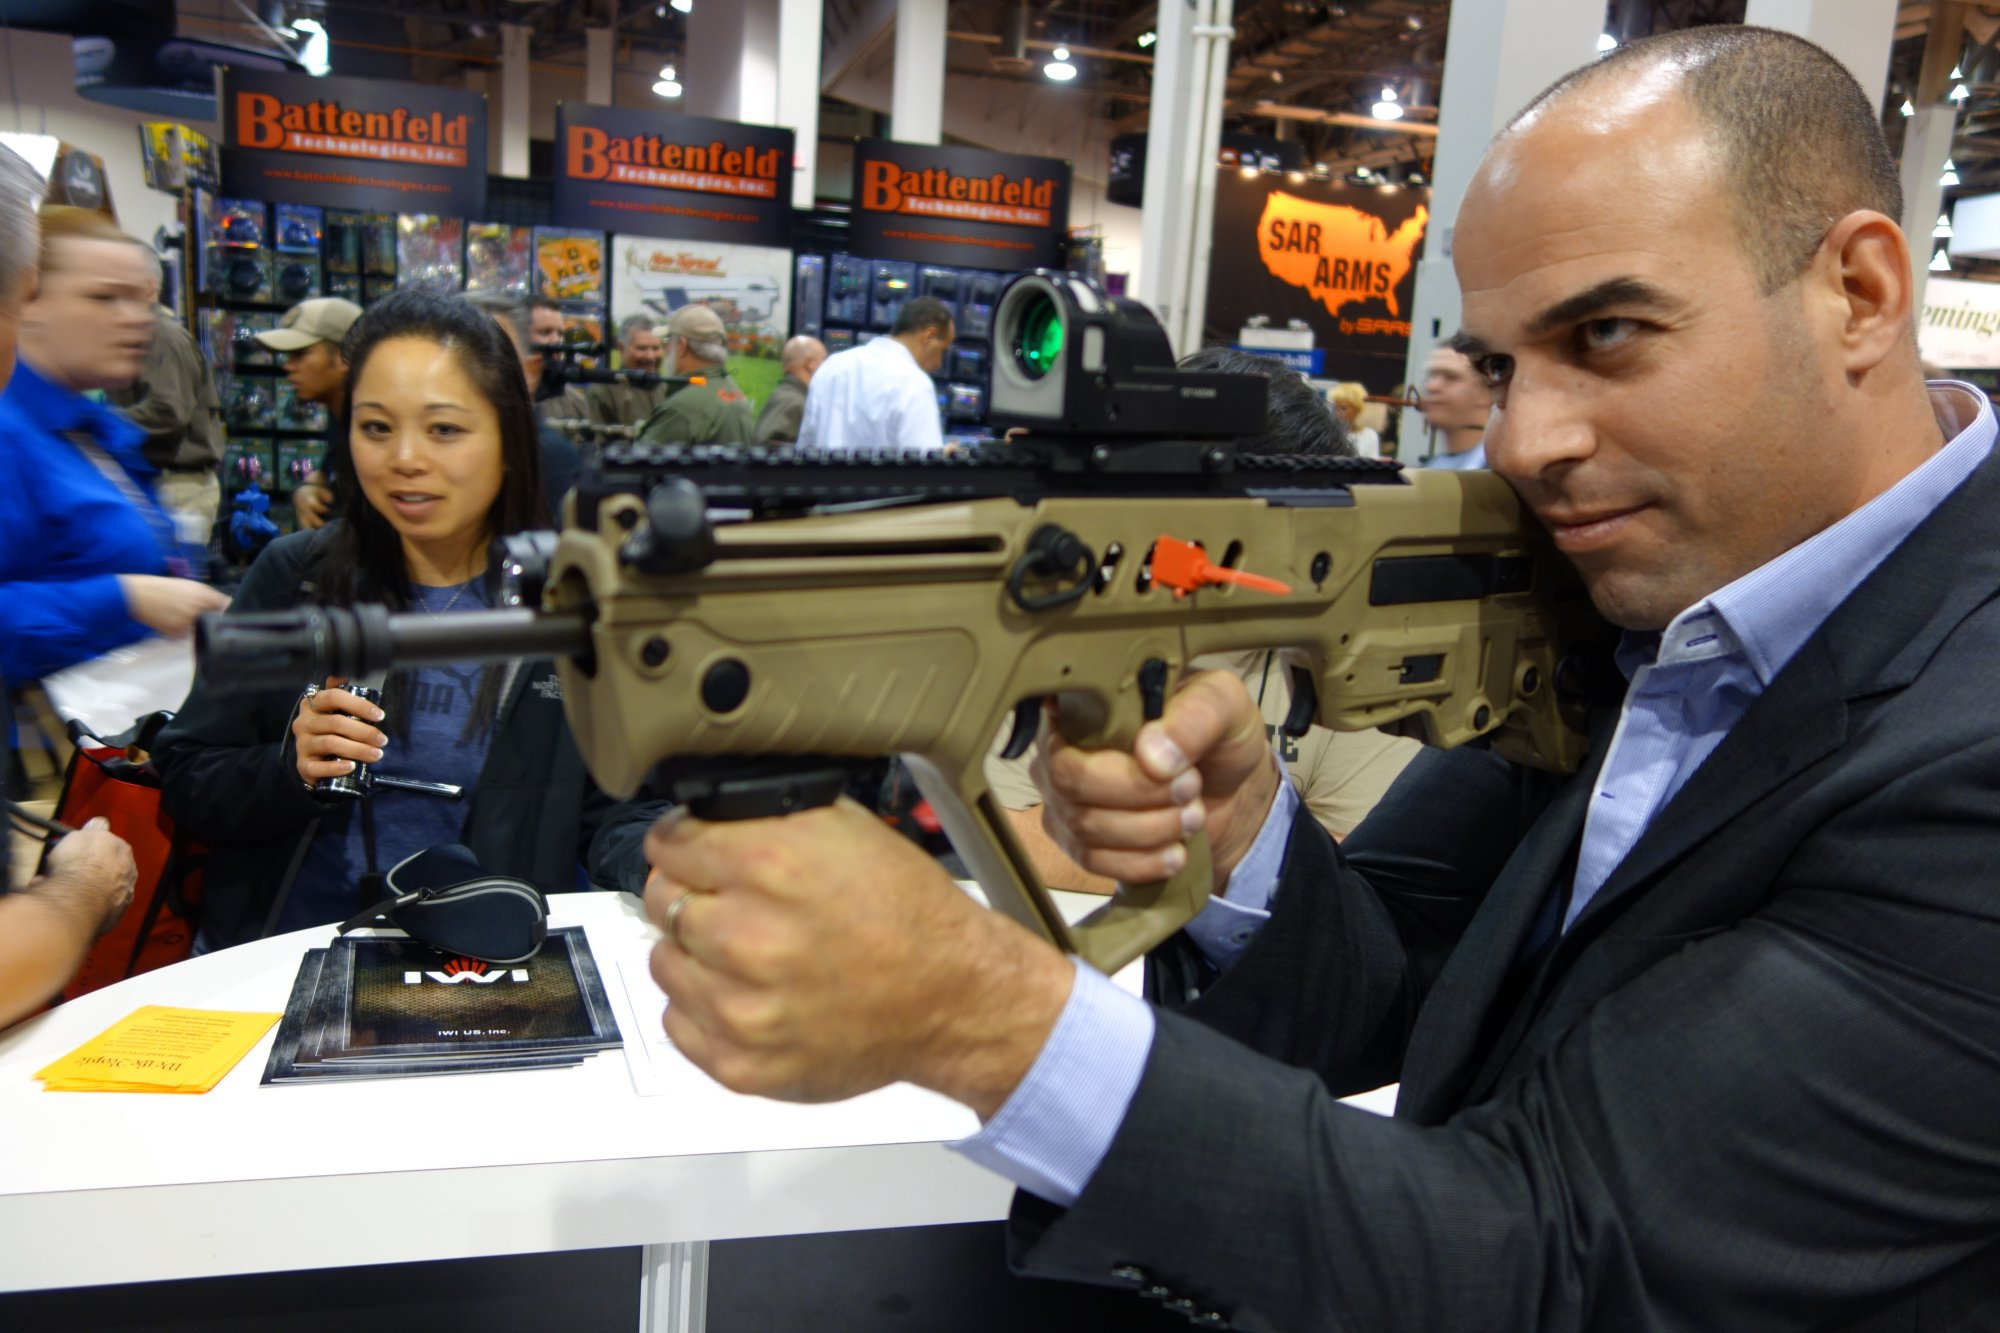 Israel Weapon Industries IWI TAVOR SAR Bullpup 5.56mm Tactical Carbine/Rifle Series: IWI TAR-21 Goes Semi-Auto-Only, Civilian-Legal and into US Production! (Video!)